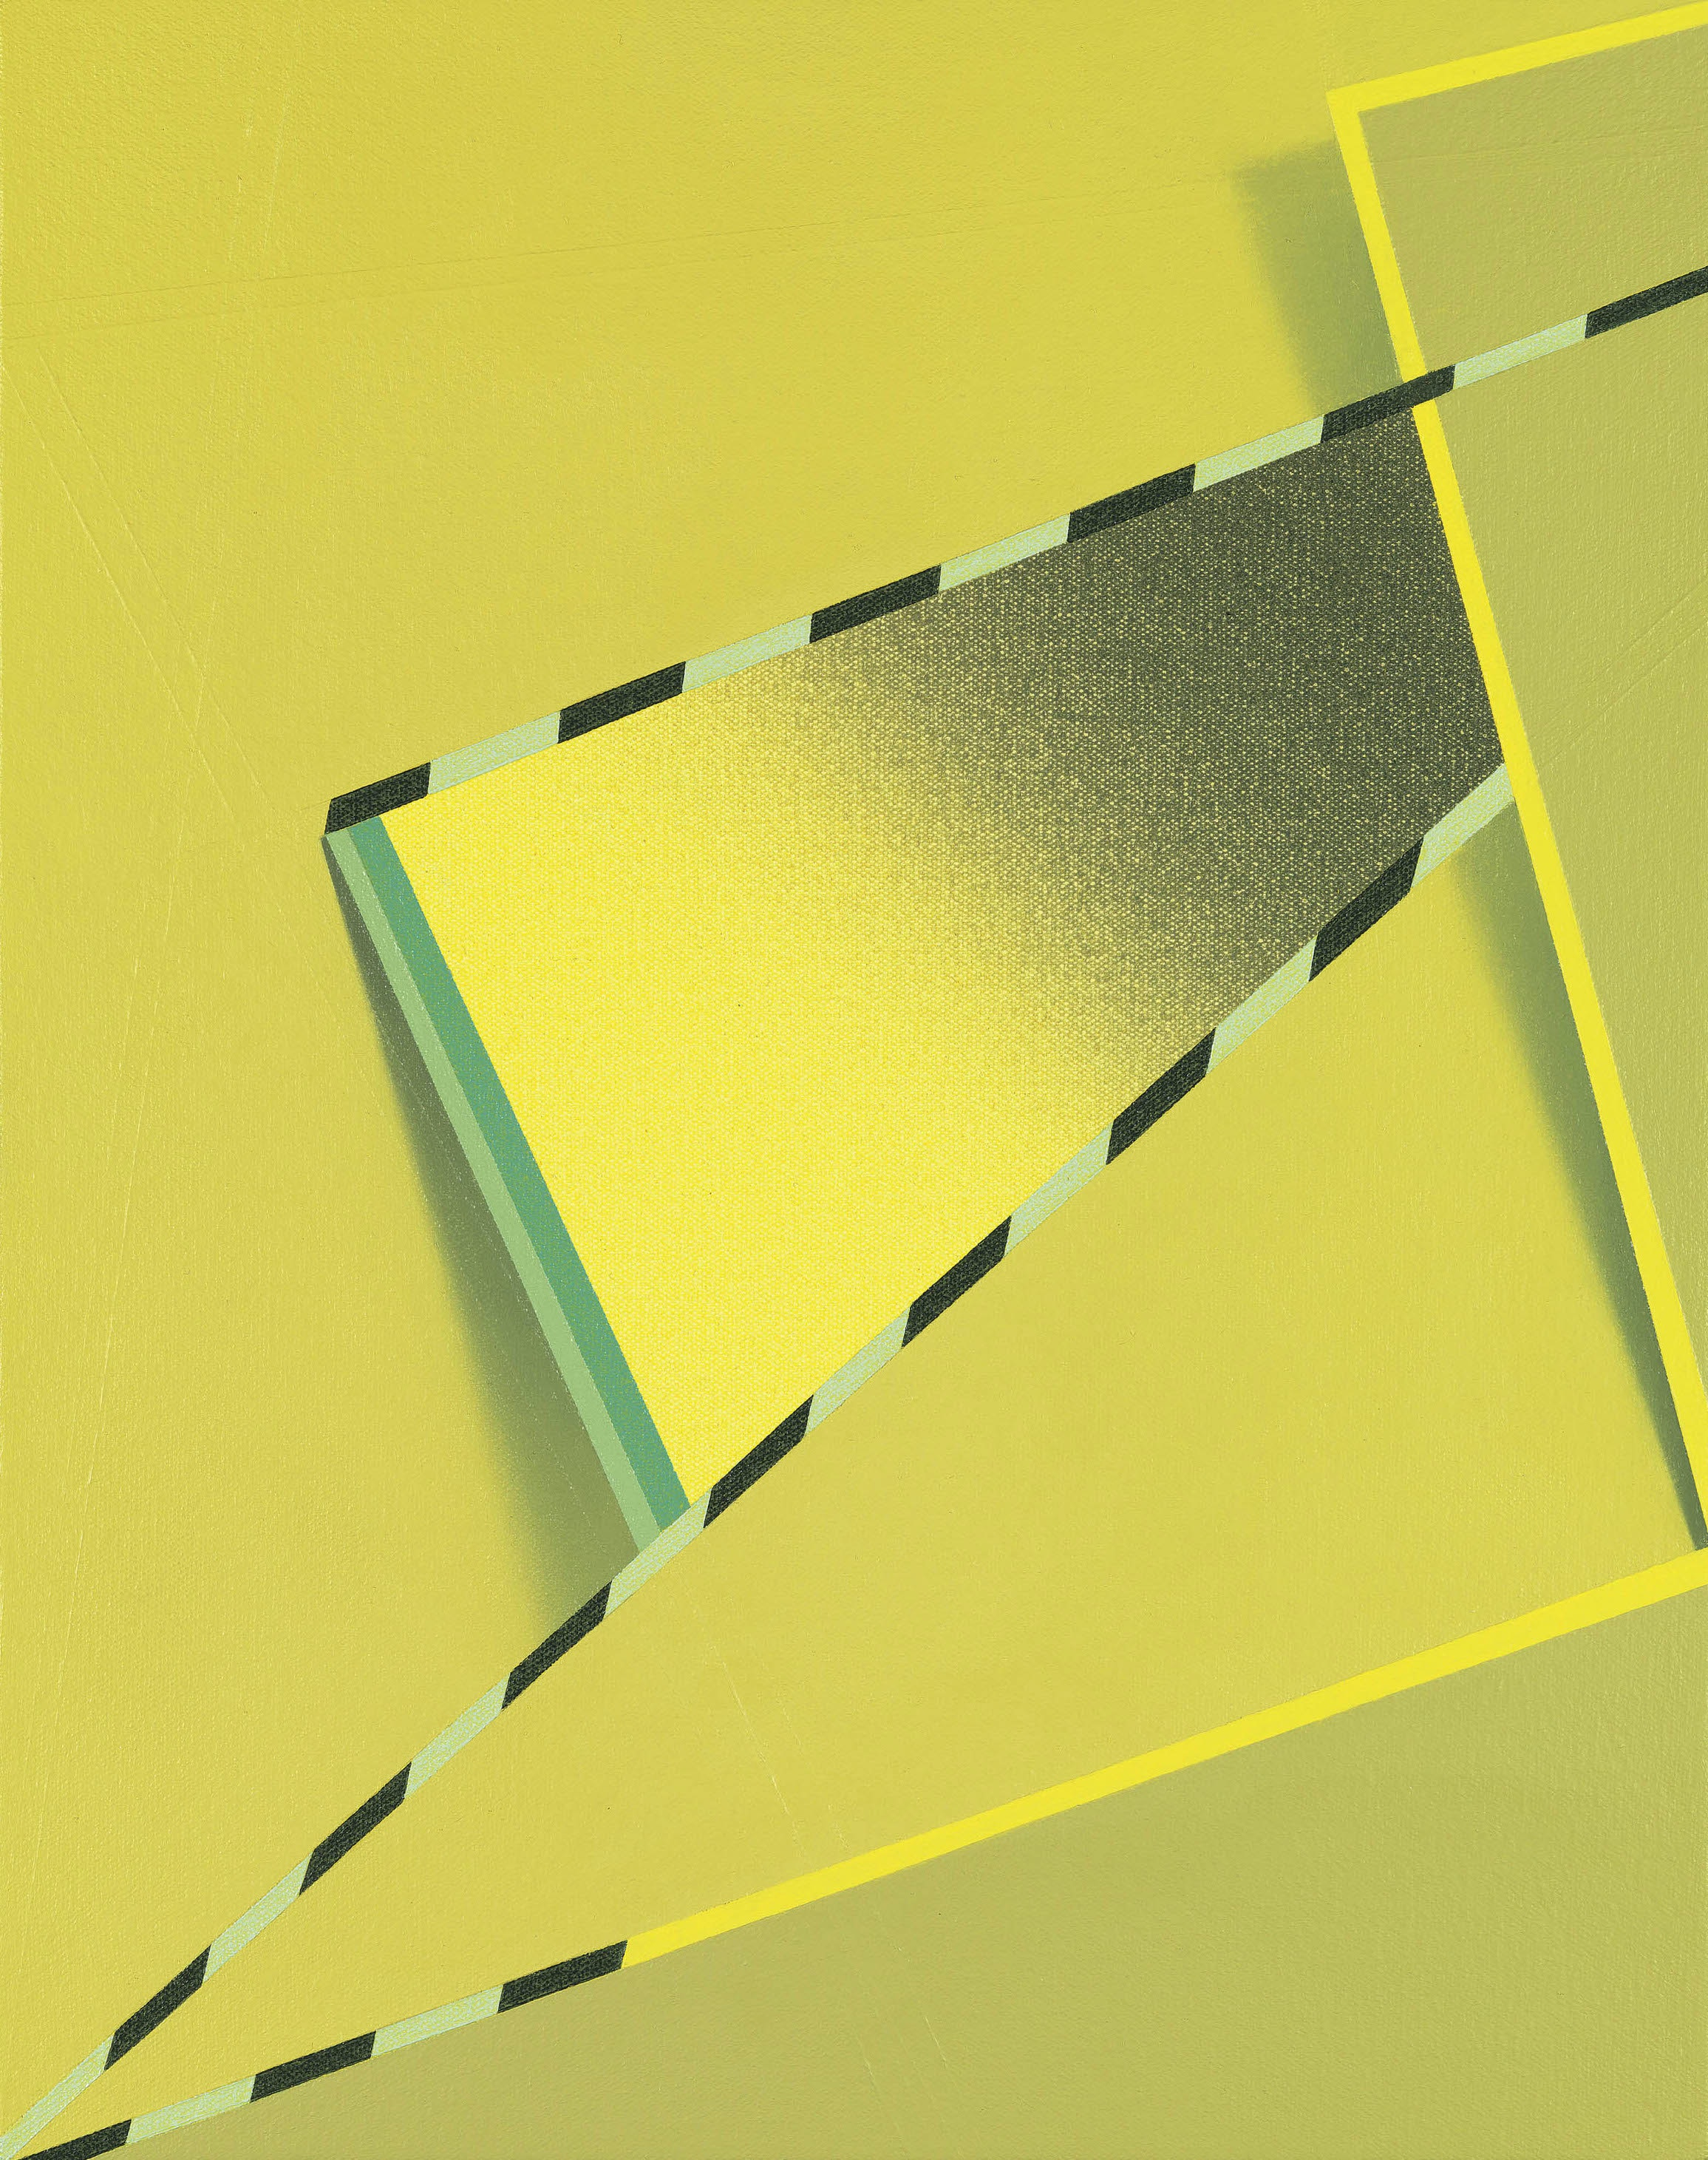 An abstract painting with a yellow background and crossed by diagonal green, black, and yellow dashed lines